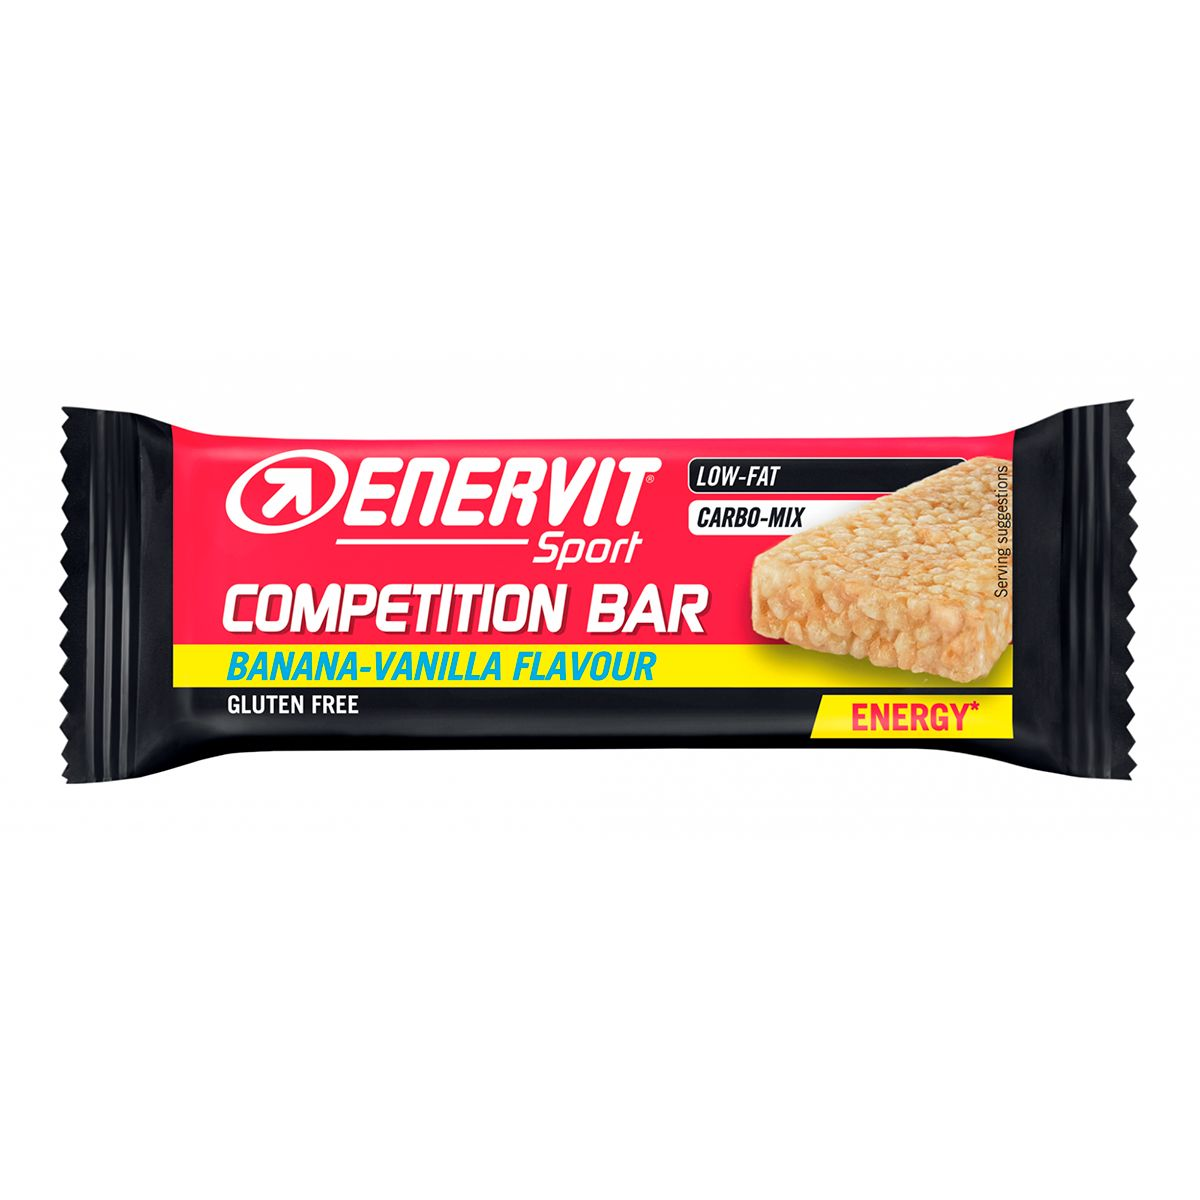 Competition Bar carbohydrate bar – gluten-free